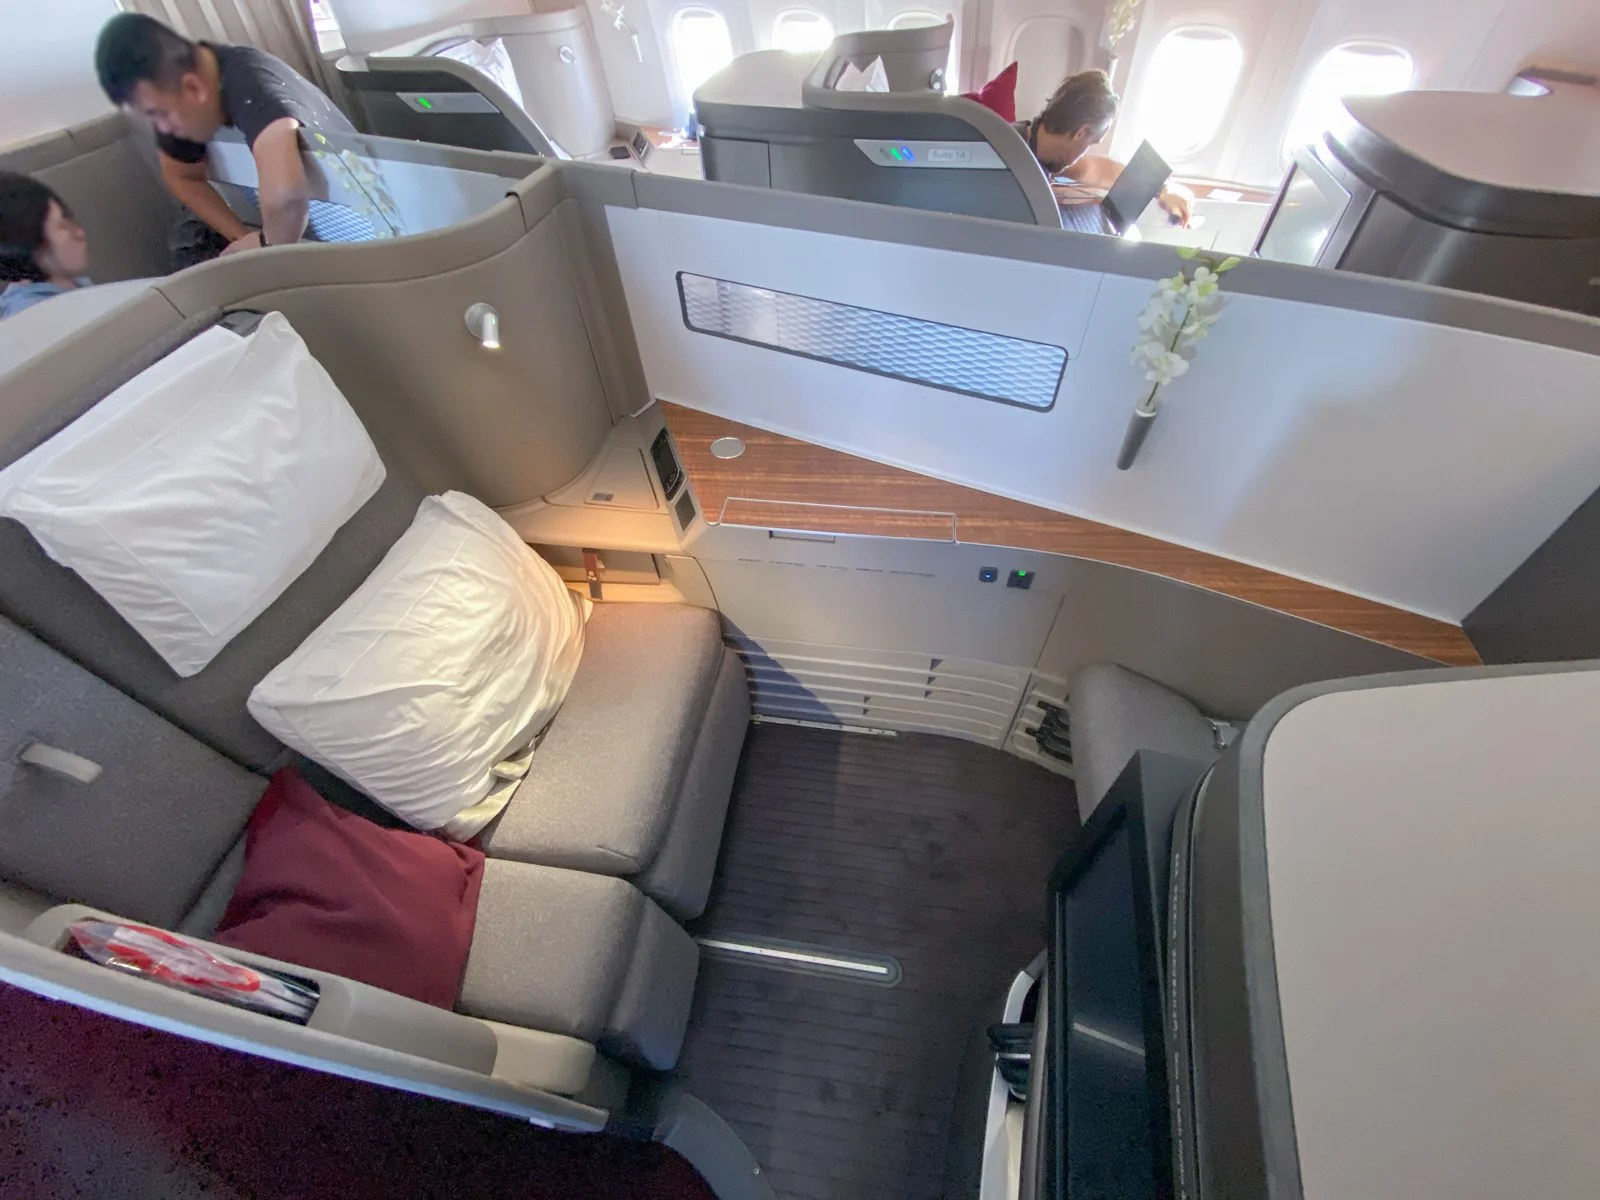 Cold ground, warm sky: A review of Cathay Pacific's first class on the 777-300ER from Hong Kong to London